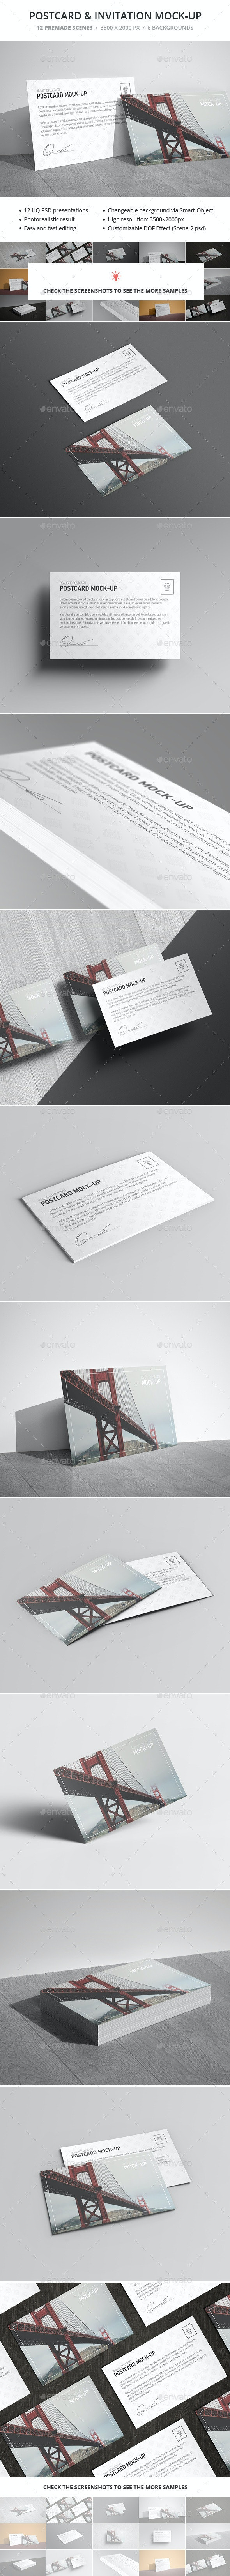 Postcard & Invitation Mock-up - Miscellaneous Print